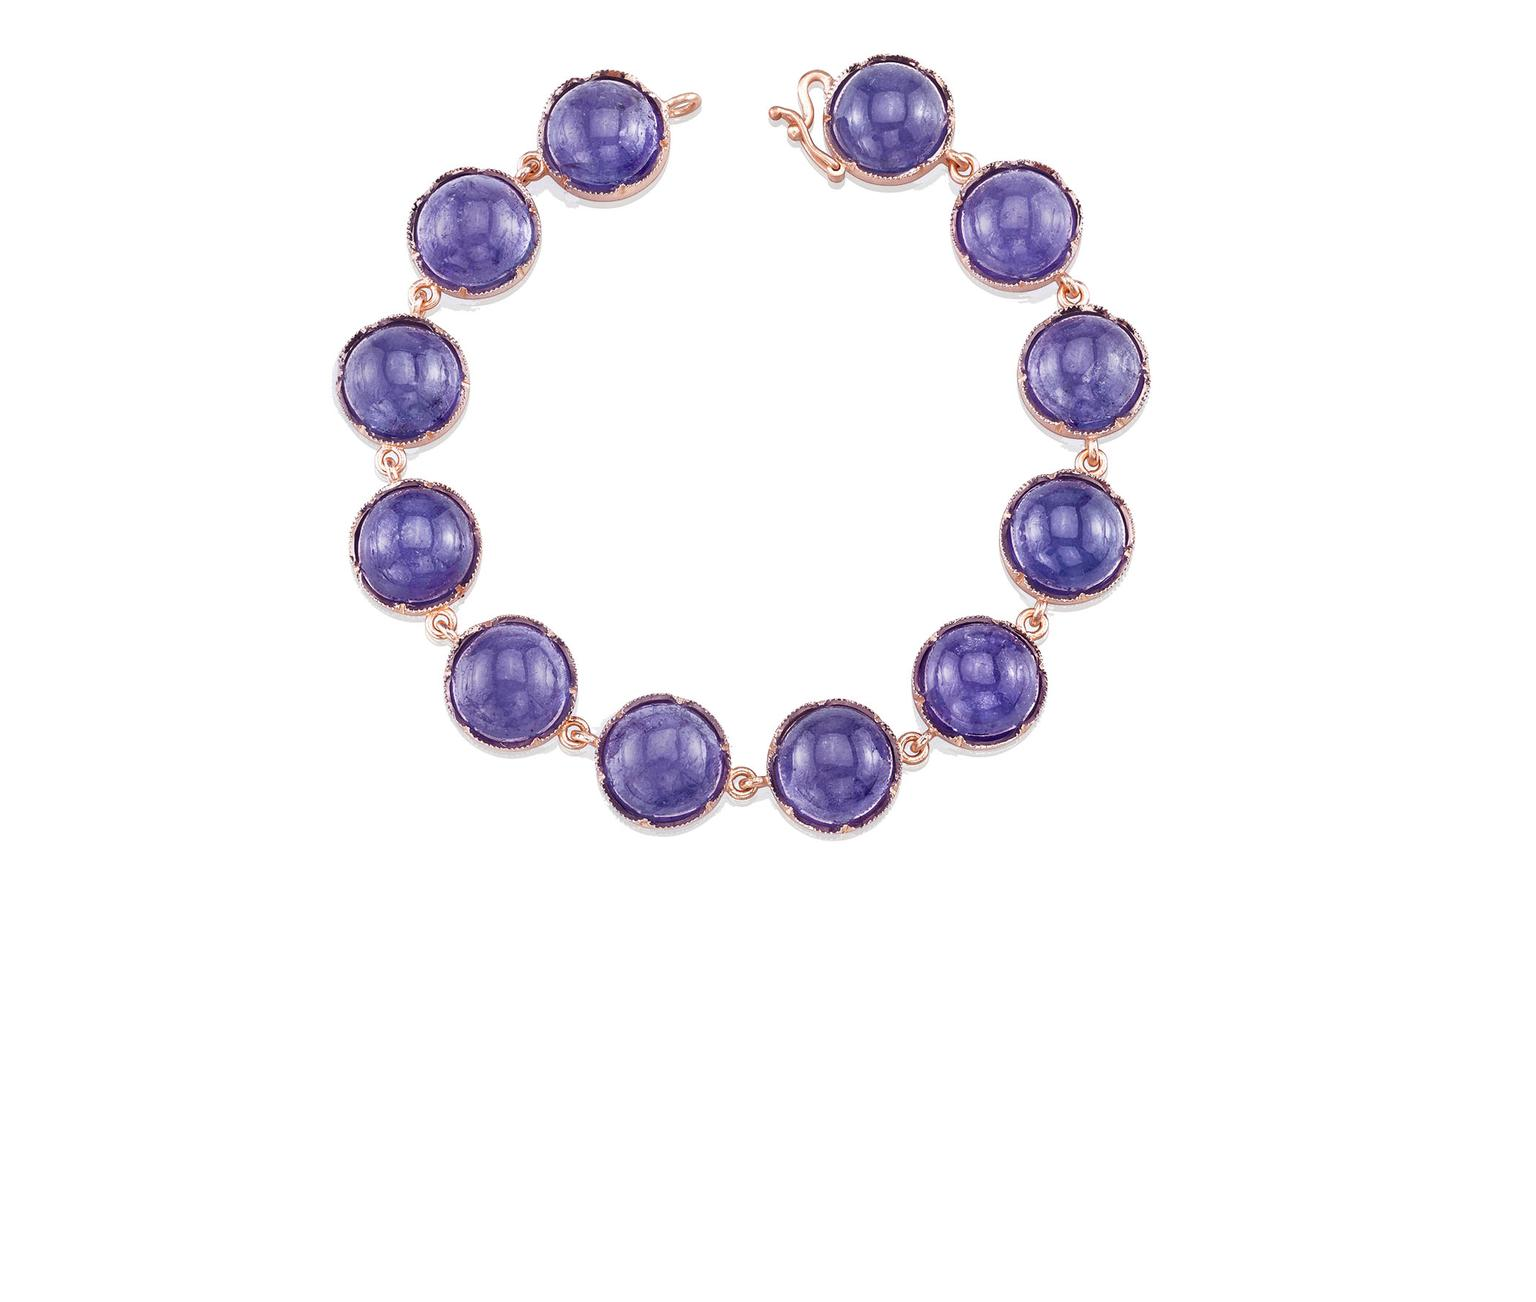 Irene-Neuwirth-Tanzanite-Bracelet-Zoom